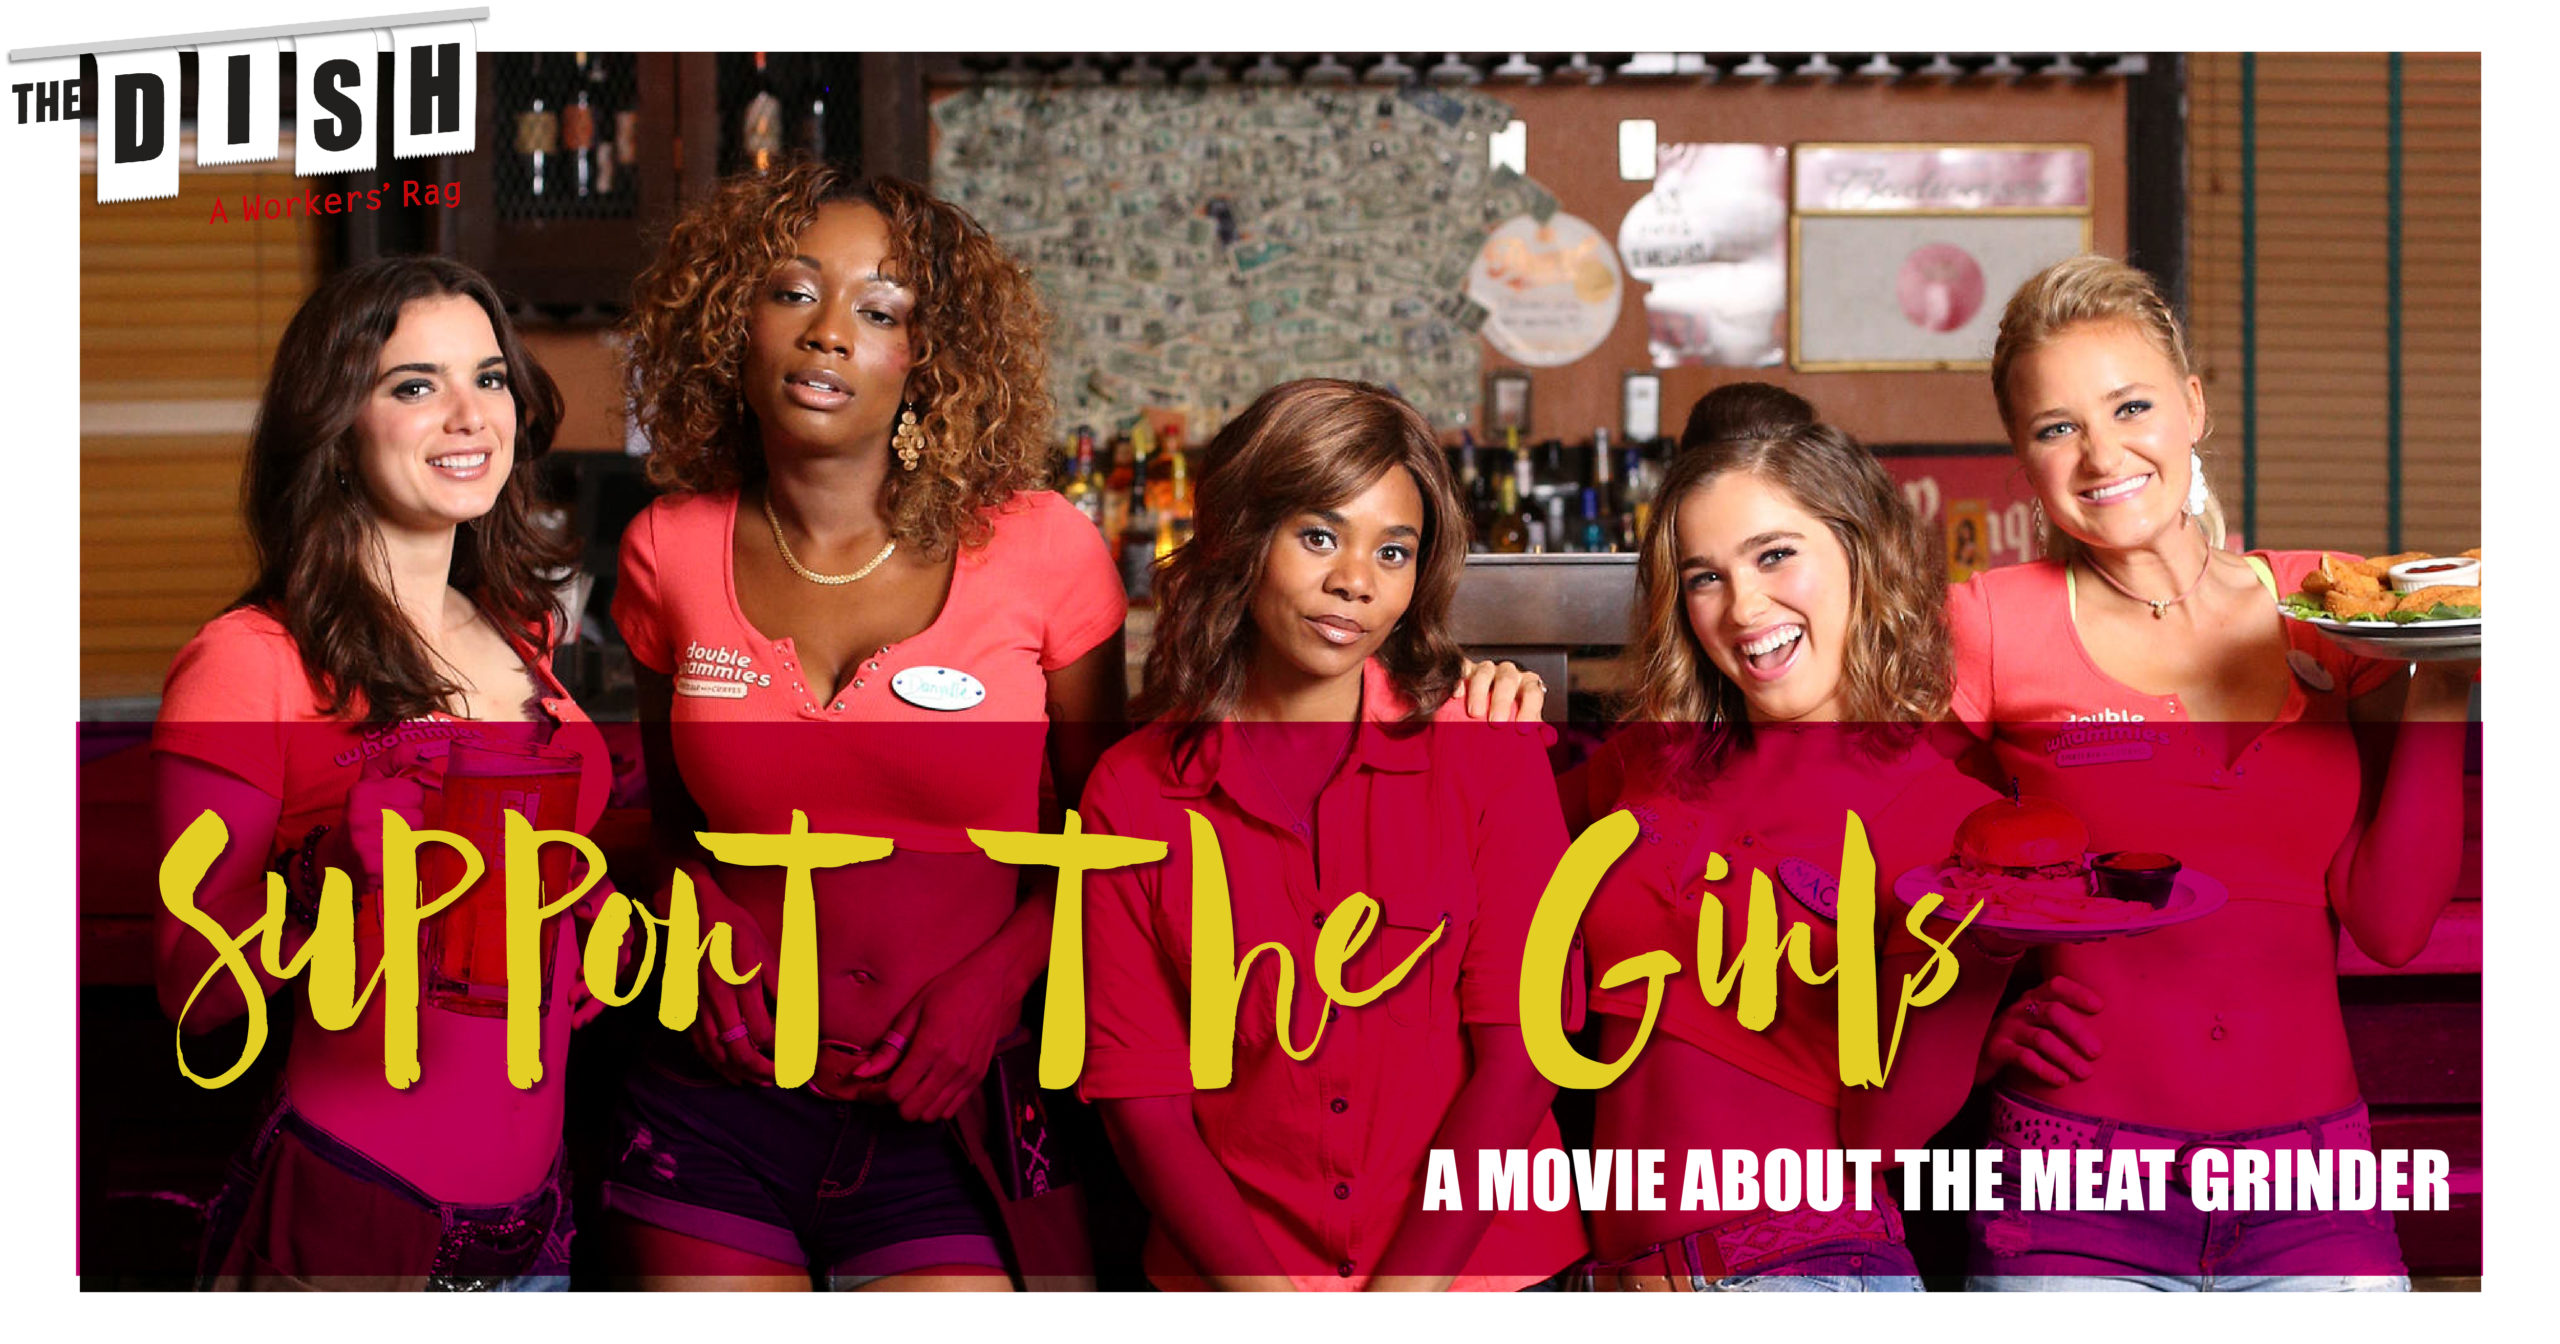 """An image from actors from the movie """"Support The Girl"""" with graphic text that reads """"The DISH"""" """"Support The Girls"""" """"A Movie About The Meat Grinder"""""""